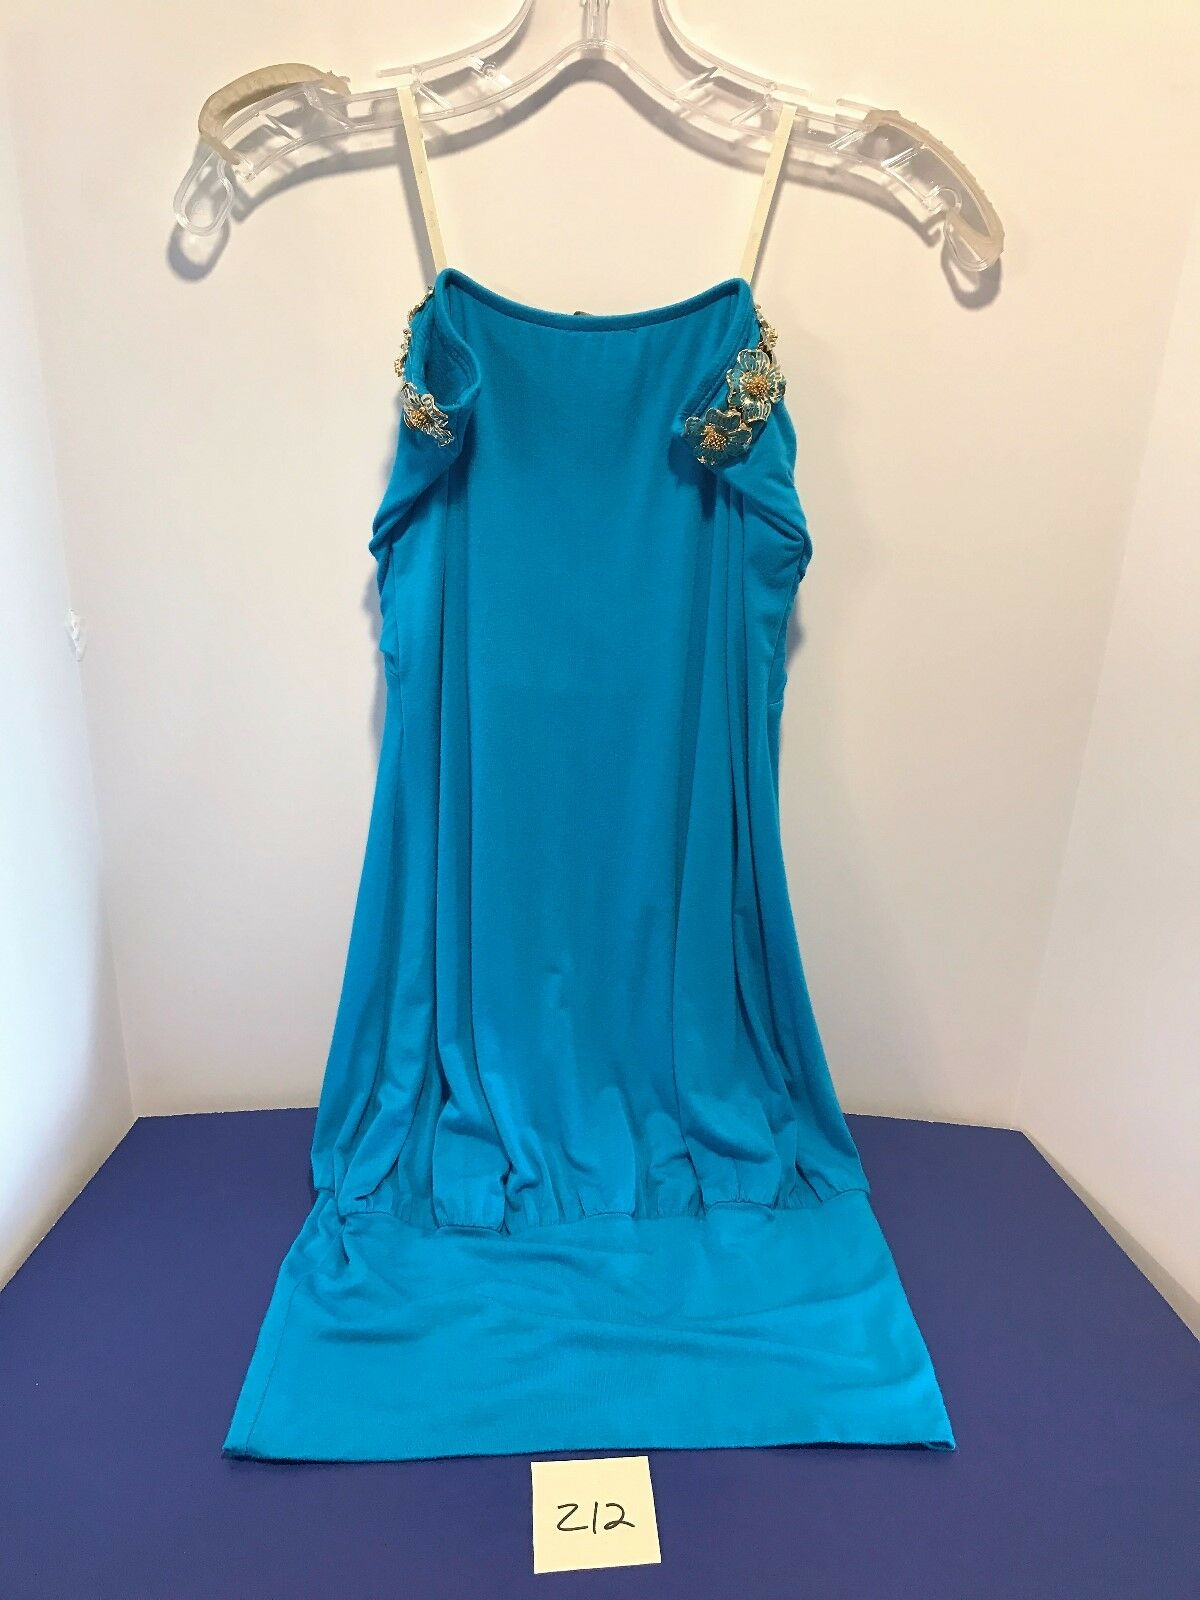 933cde2205e4 ... NWT SKY Brand Dress Turquoise Turquoise Turquoise Aqua Metal gold  Flowers Strapless Short M Z12 345972 ...